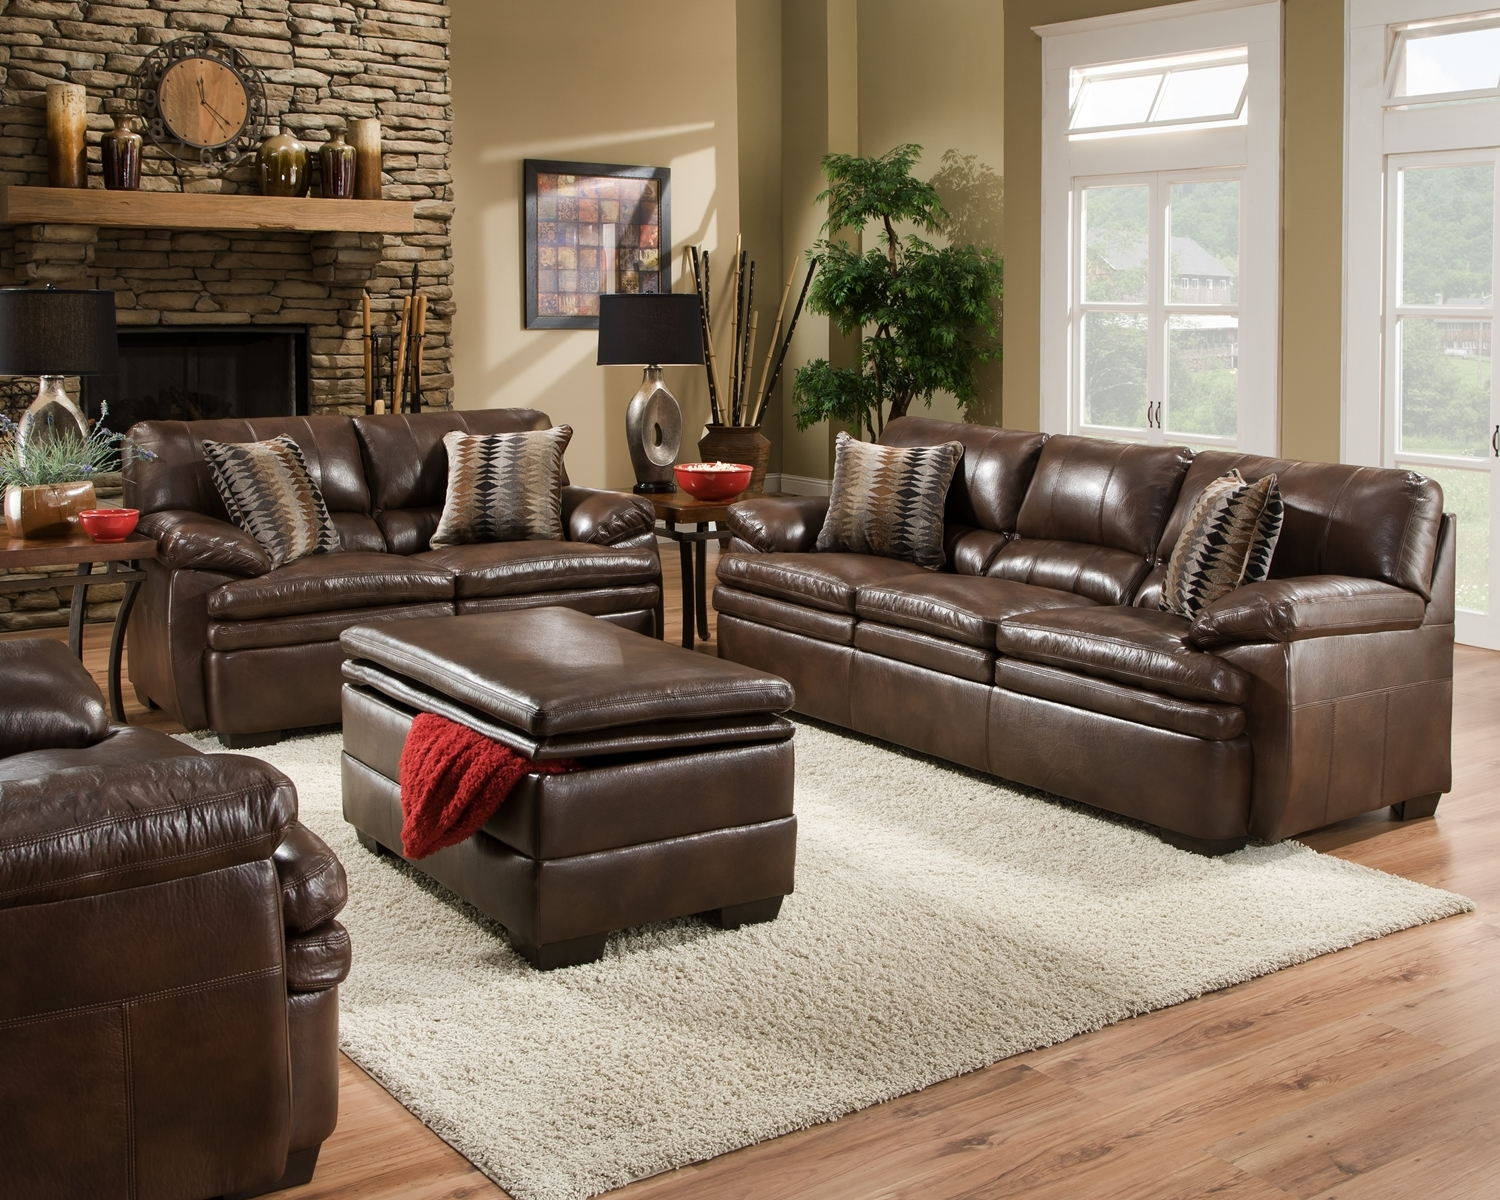 Brown Bonded Leather Sofa Set Casual Living Room Furniture w/ Accent ...